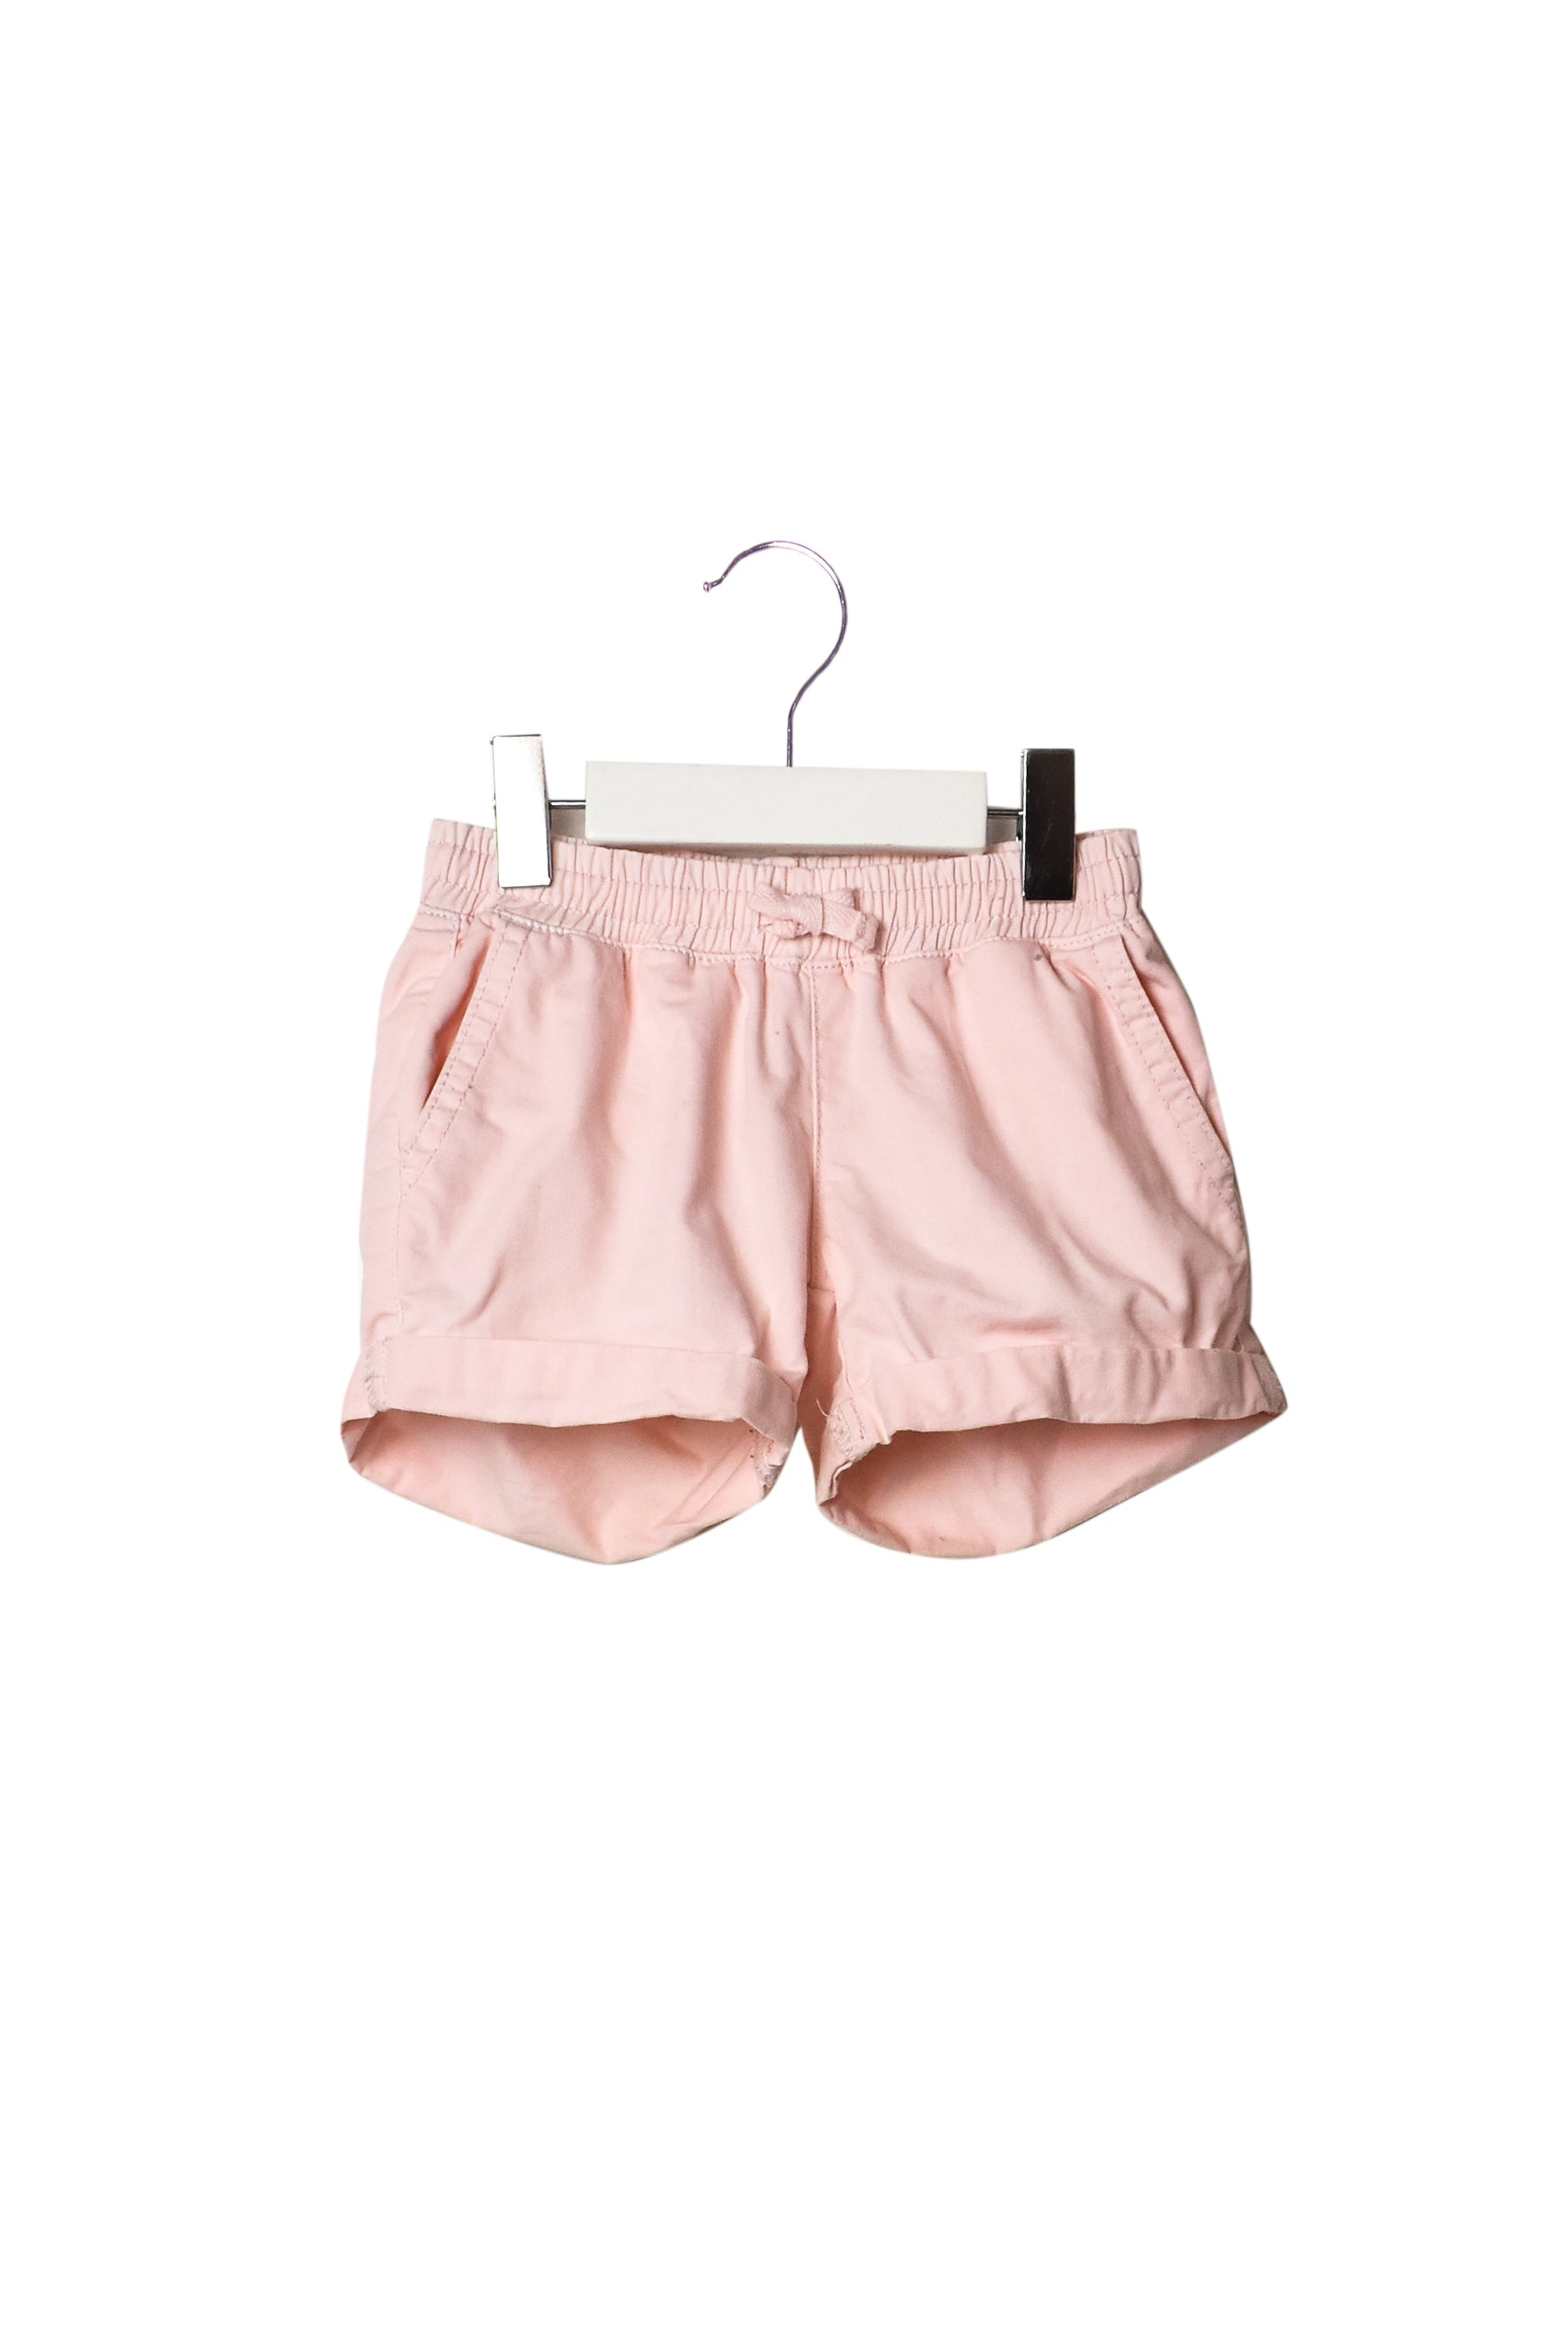 10006789 Seed Kids~Shorts 2-3T at Retykle